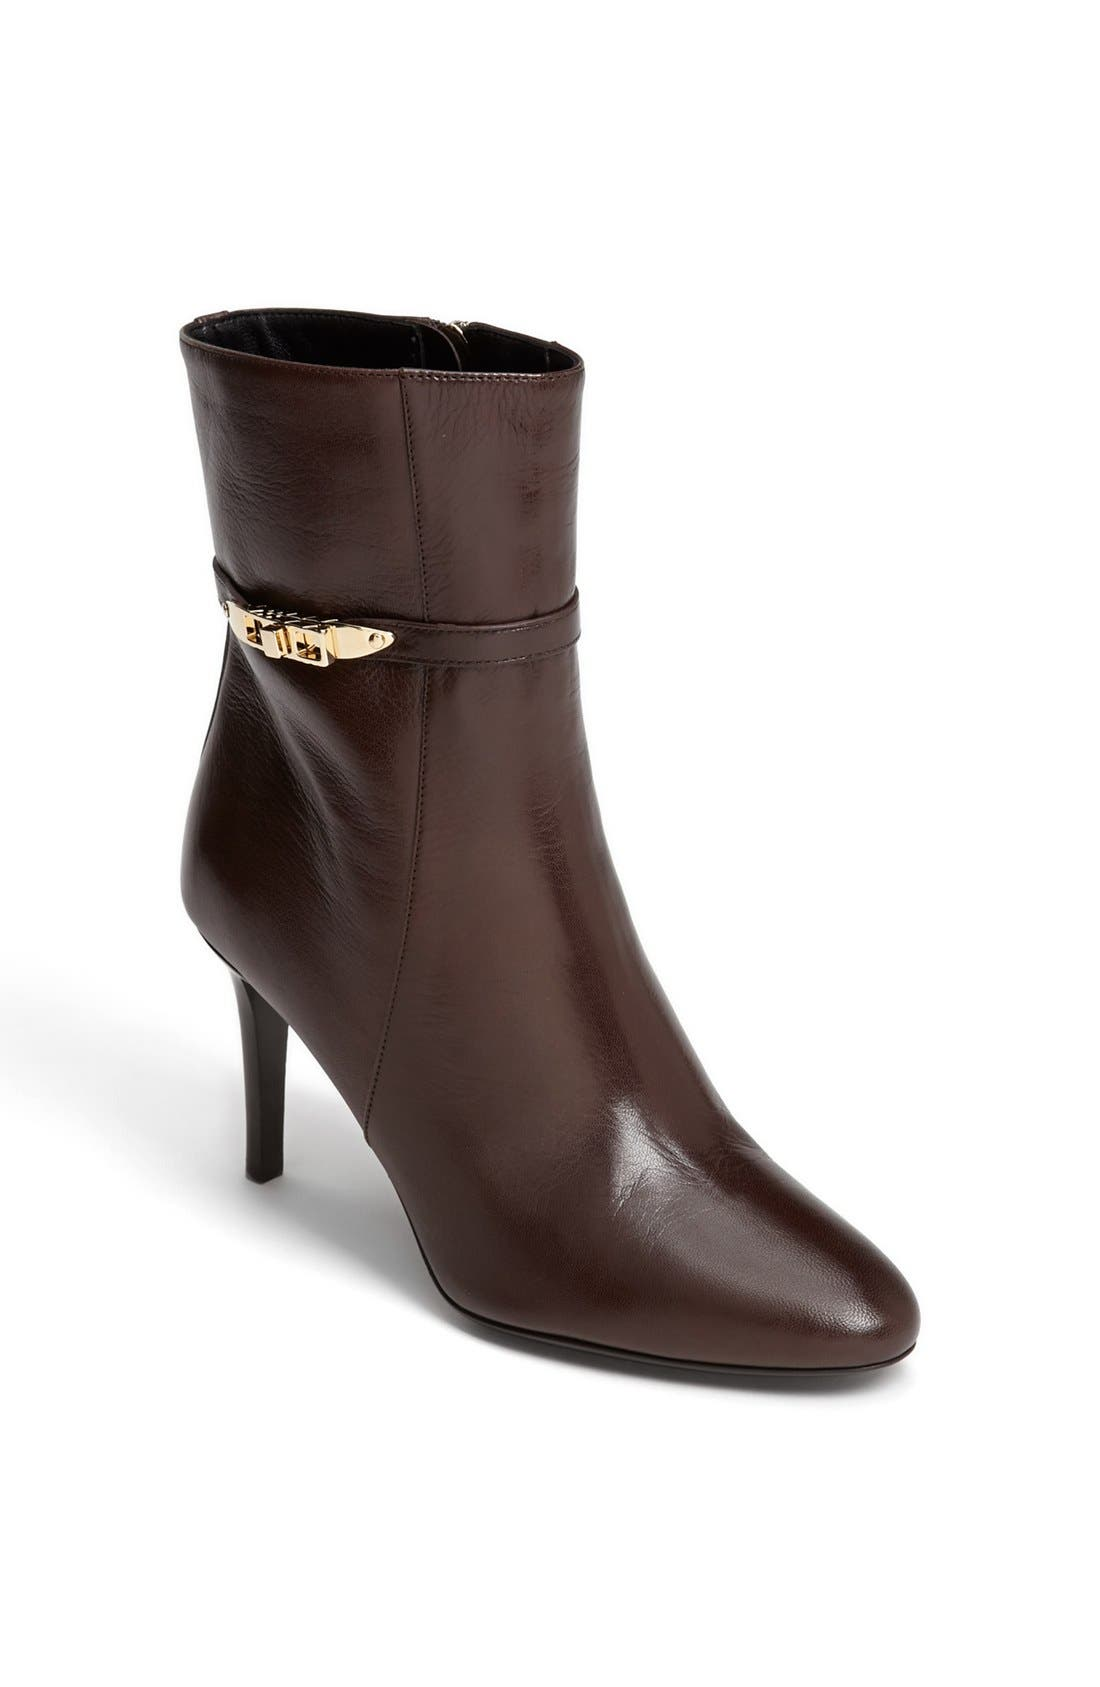 Main Image - Burberry 'Hainult' Leather Bootie